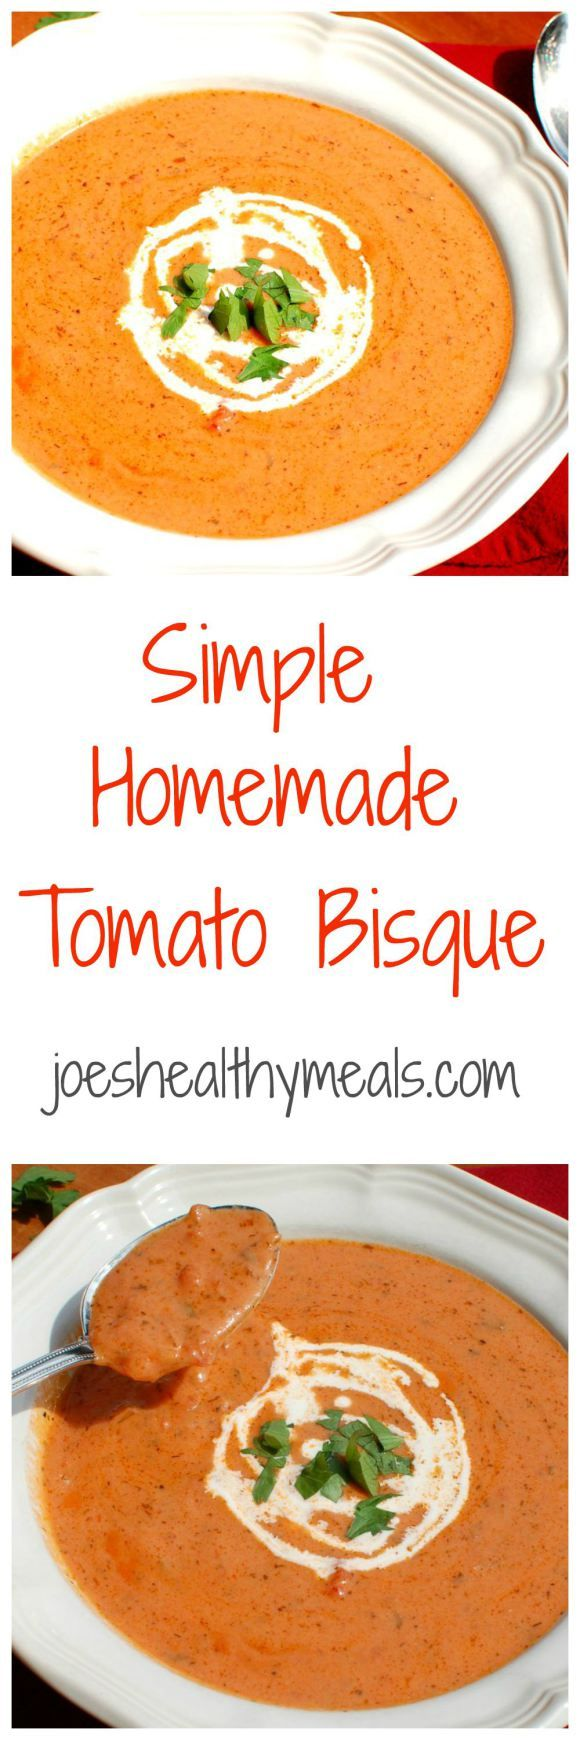 Simple Homemade Tomato Bisque. Simple Homemade Tomato Bisque.The exceptional flavor of this will make you think that you are at a fancy restaurant, but you made it yourself! | joeshealthymeals.com